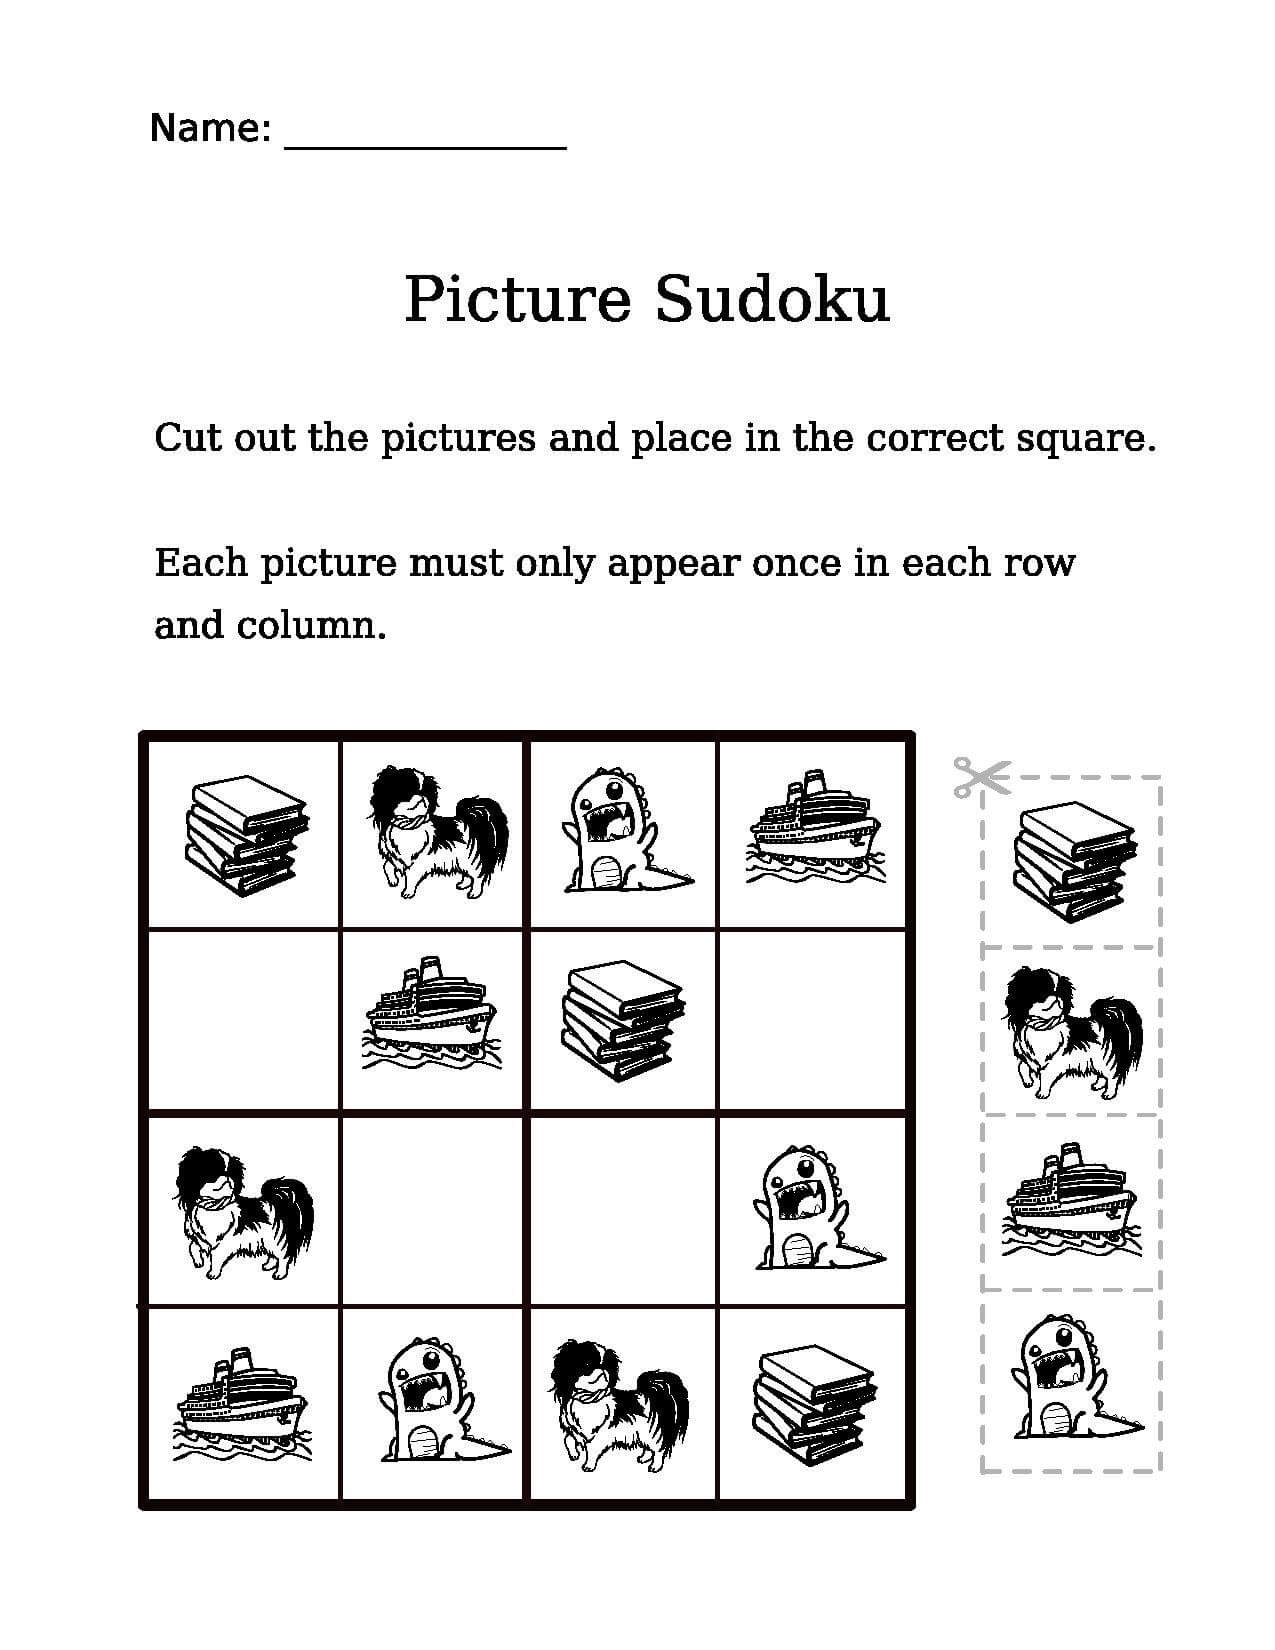 Picture Sudoku Worksheet